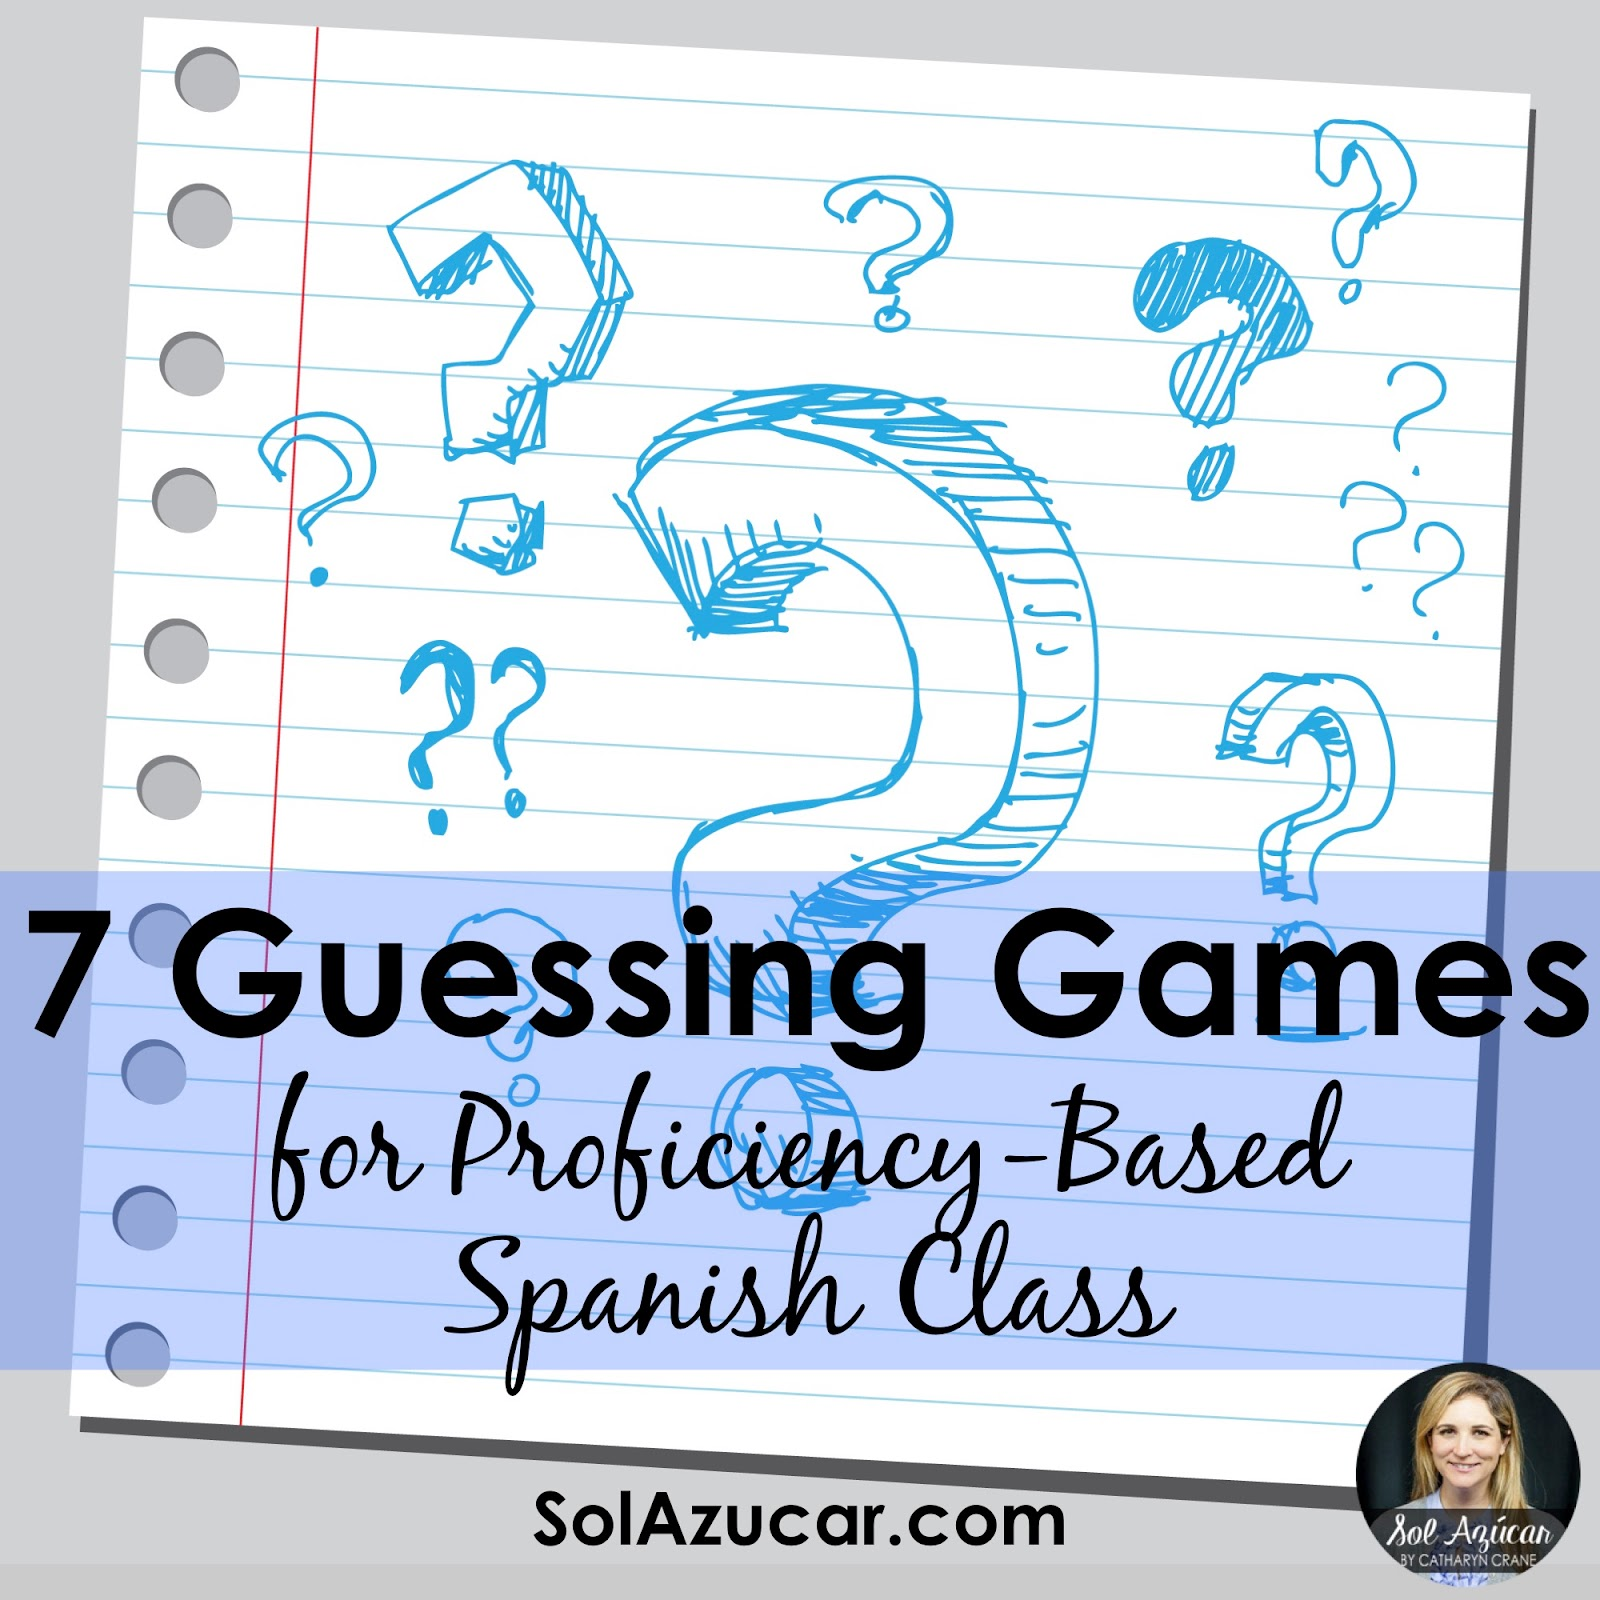 7 Guessing Games for Spanish Class | Sol Azúcar by Catharyn Crane